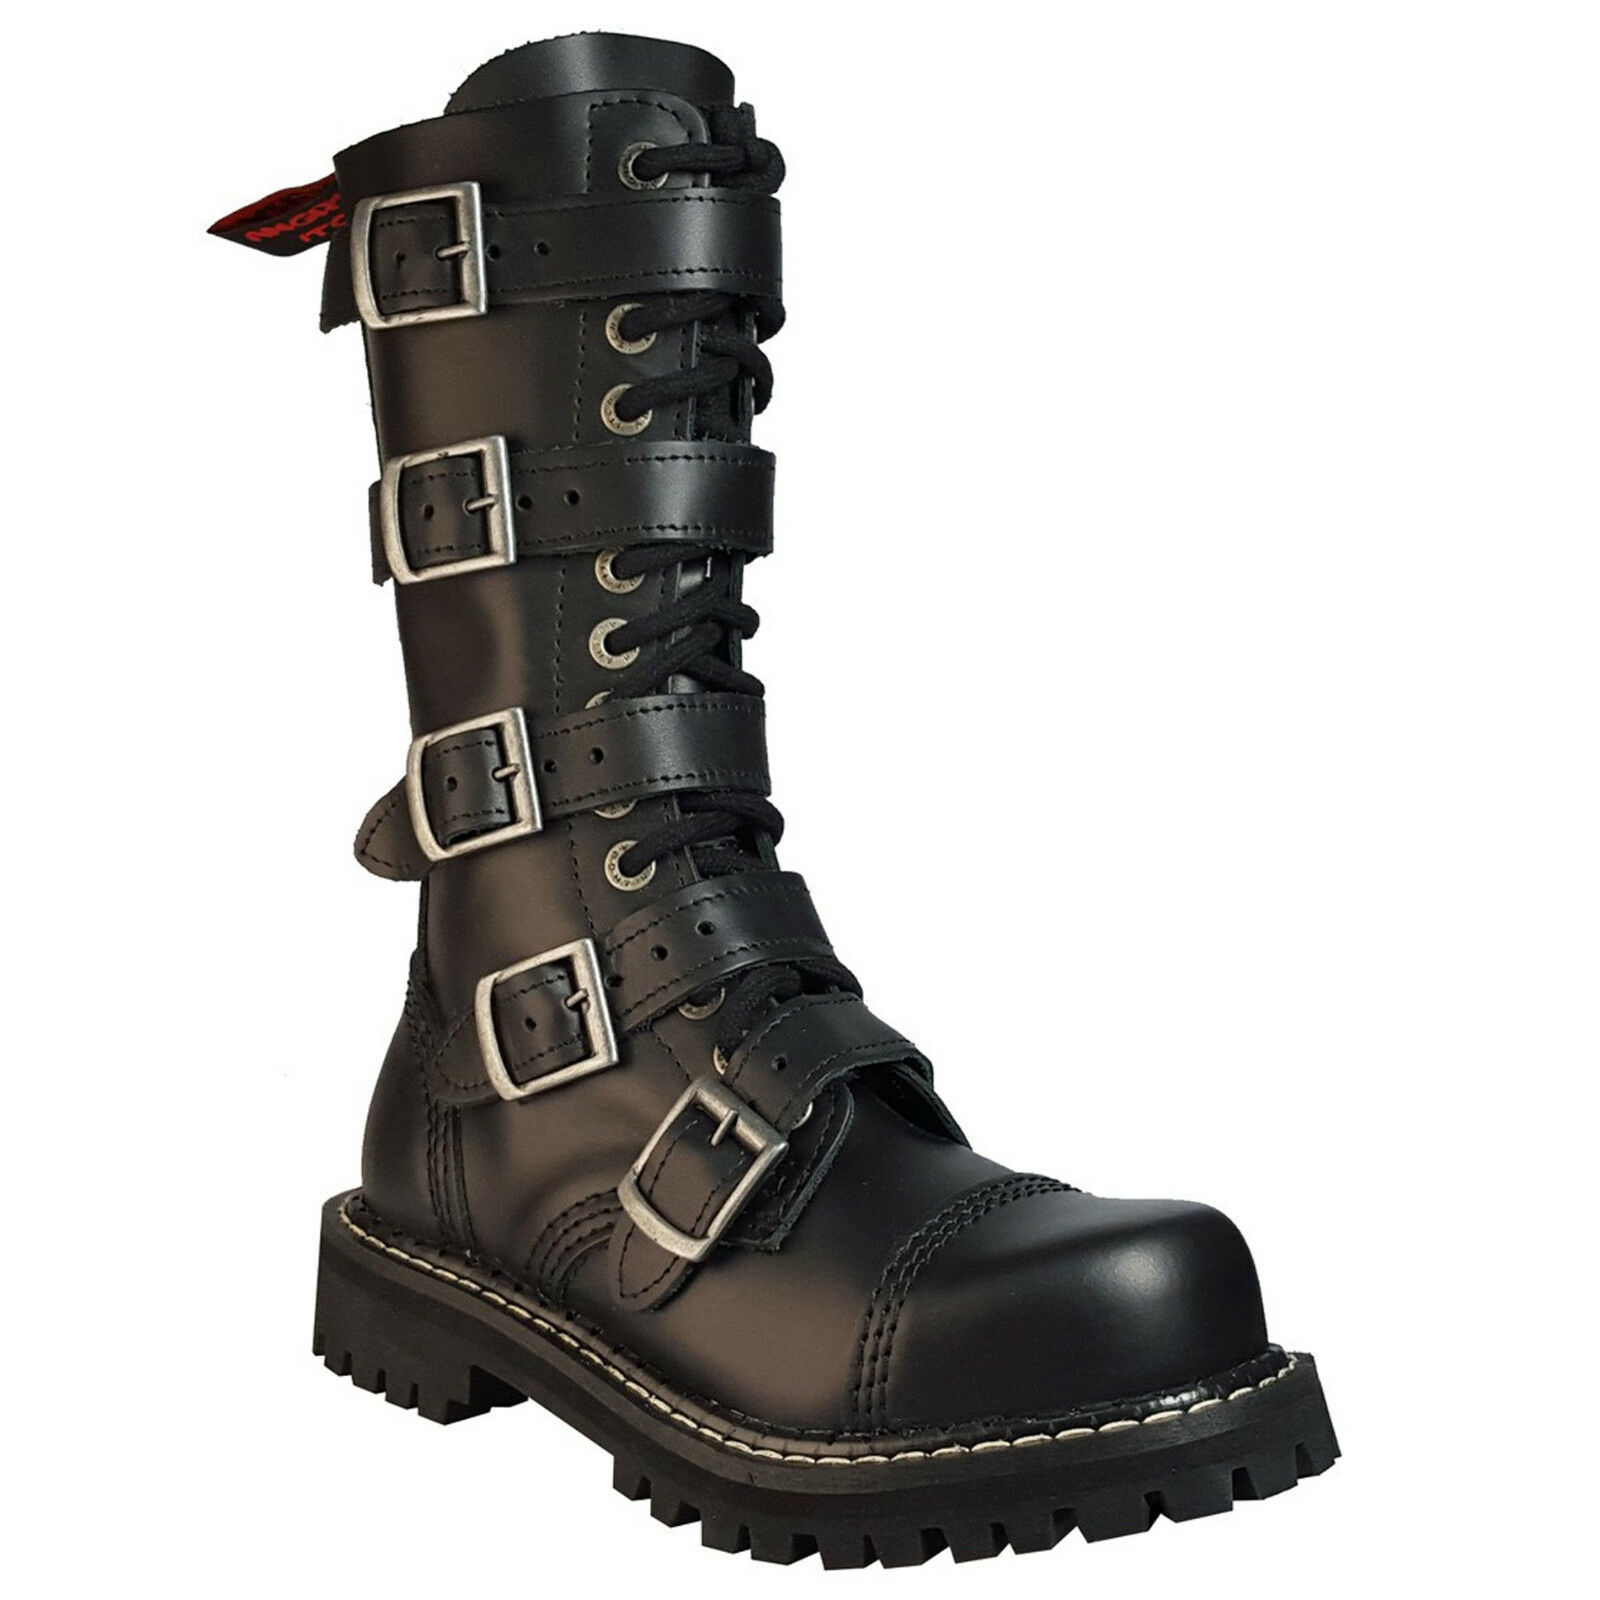 Angry Itch 5-Buckle 14 fori 5-Buckle Itch Gothic Punk Army Ranger Pelle Esercito Stivali con RV & 6f9bed